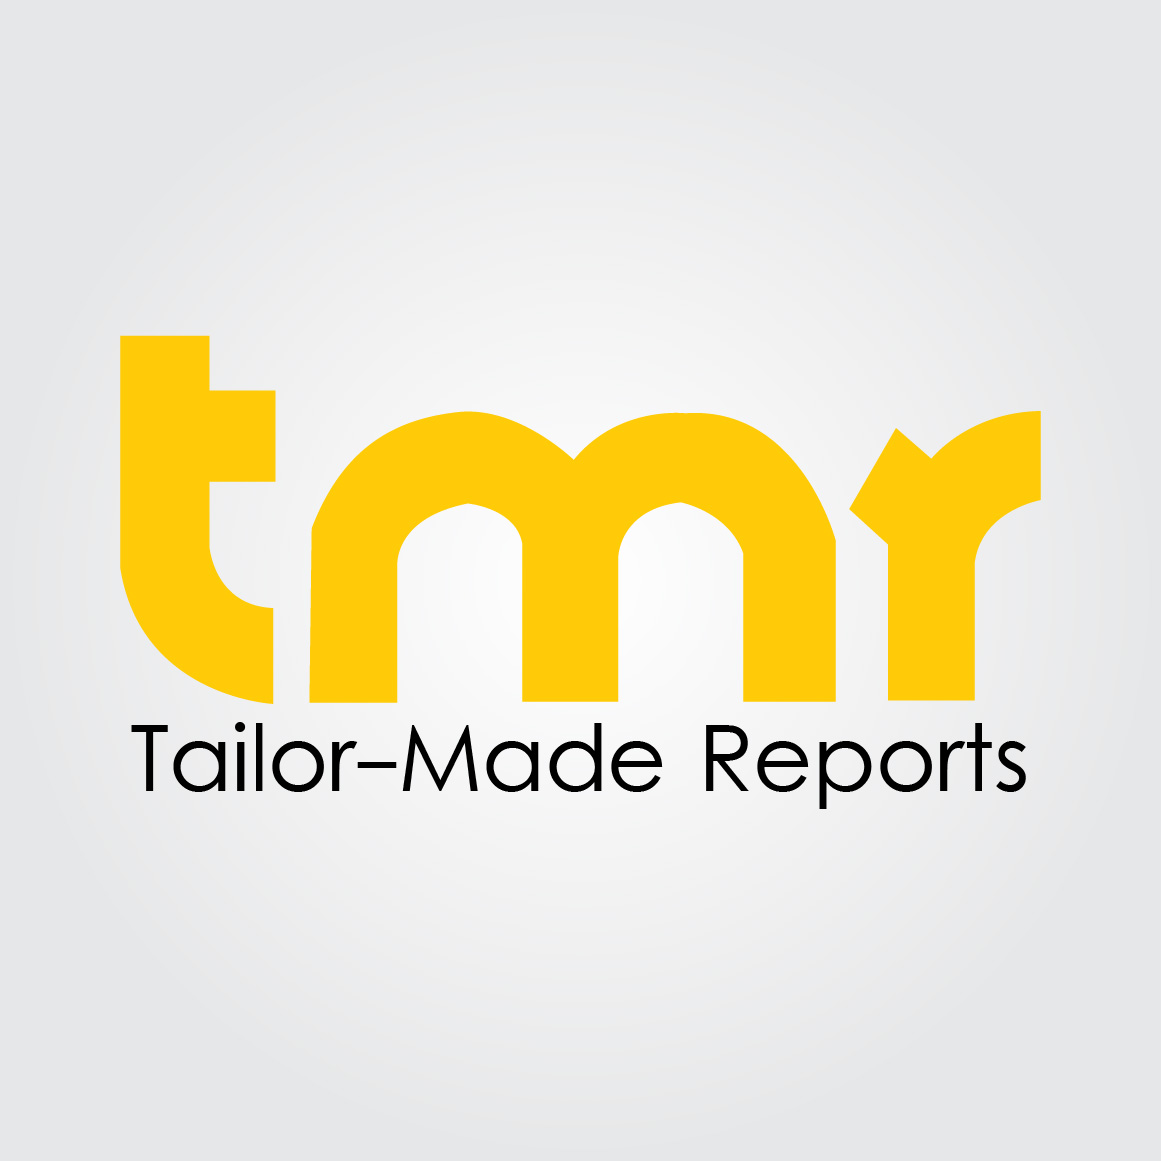 Cold Milling Machines Market - Asia Pacific is predicted to account for significant share | Here's Why